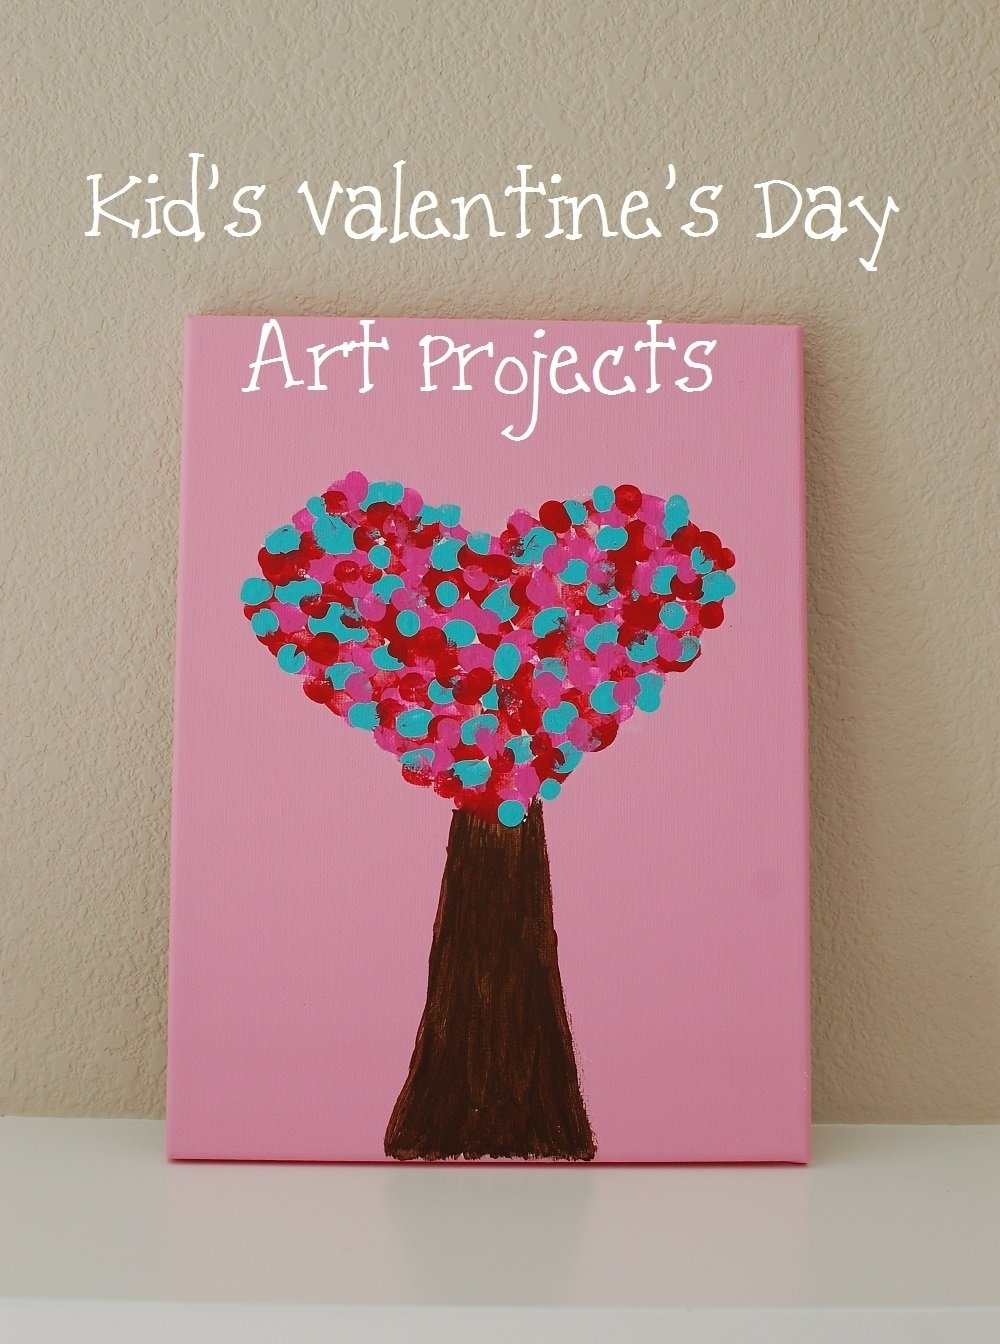 10 Awesome Arts And Crafts Ideas For Valentines Day